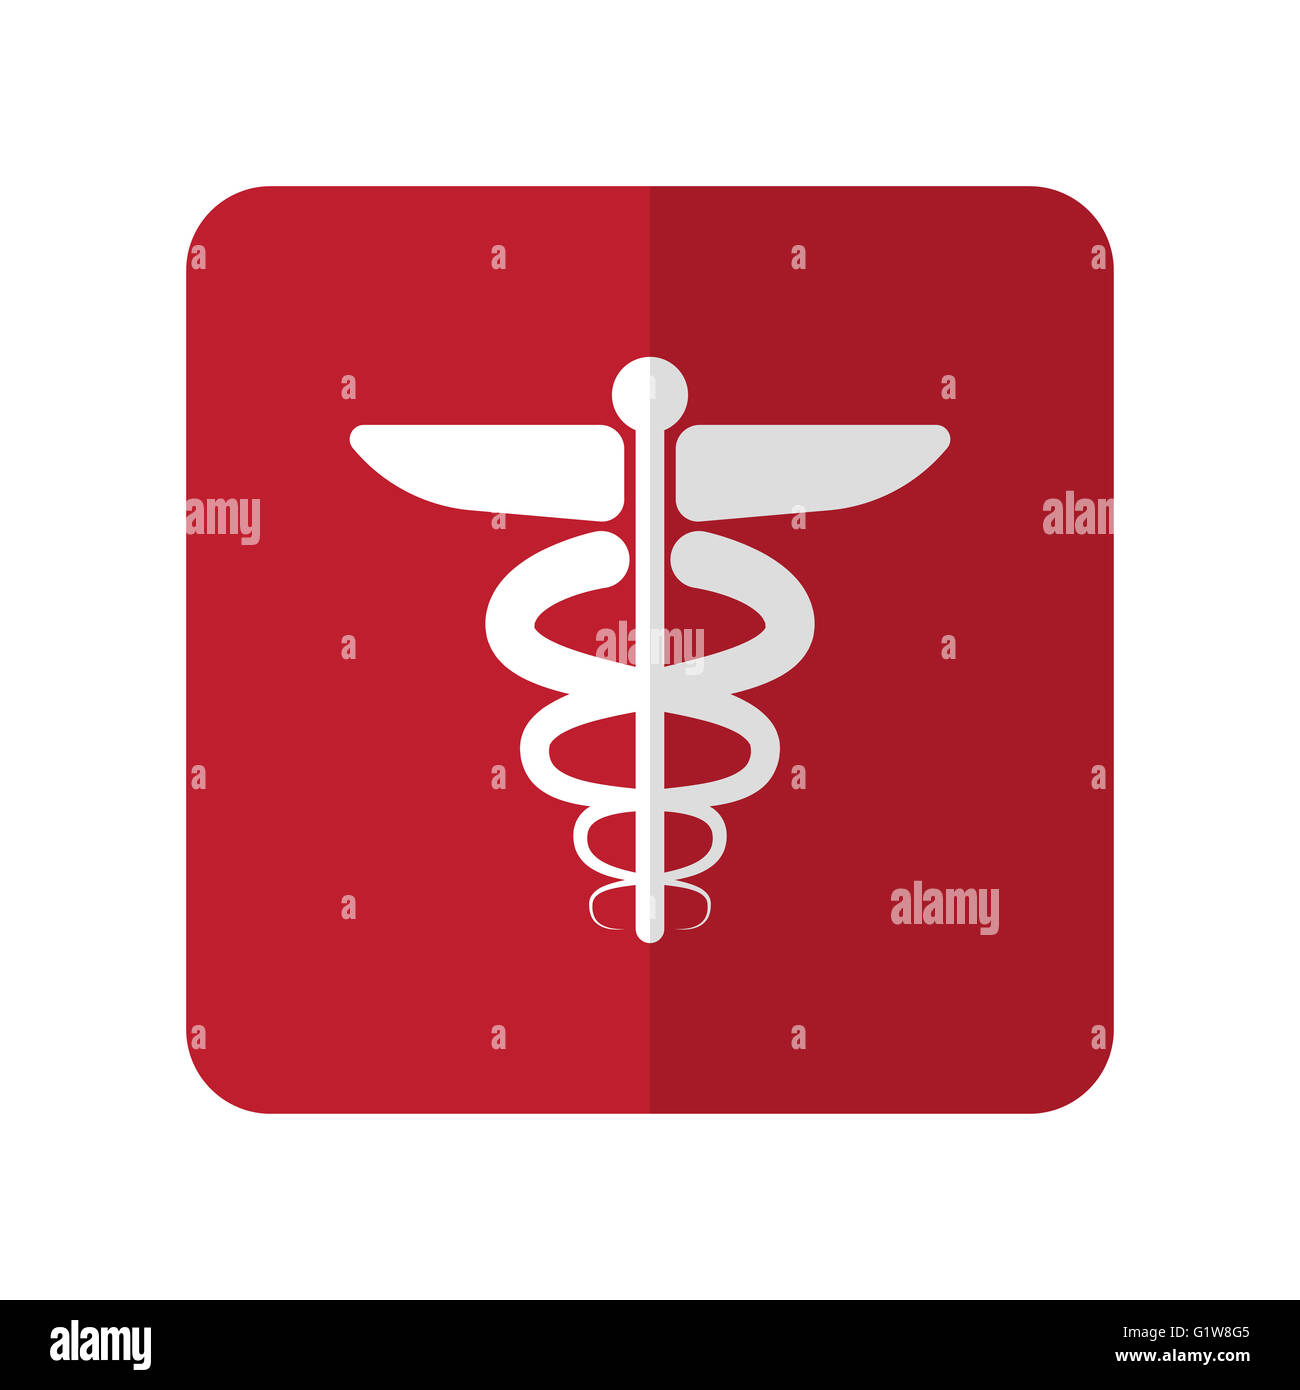 White Medical Symbol Flat Icon On Red Rounded Square On White Stock